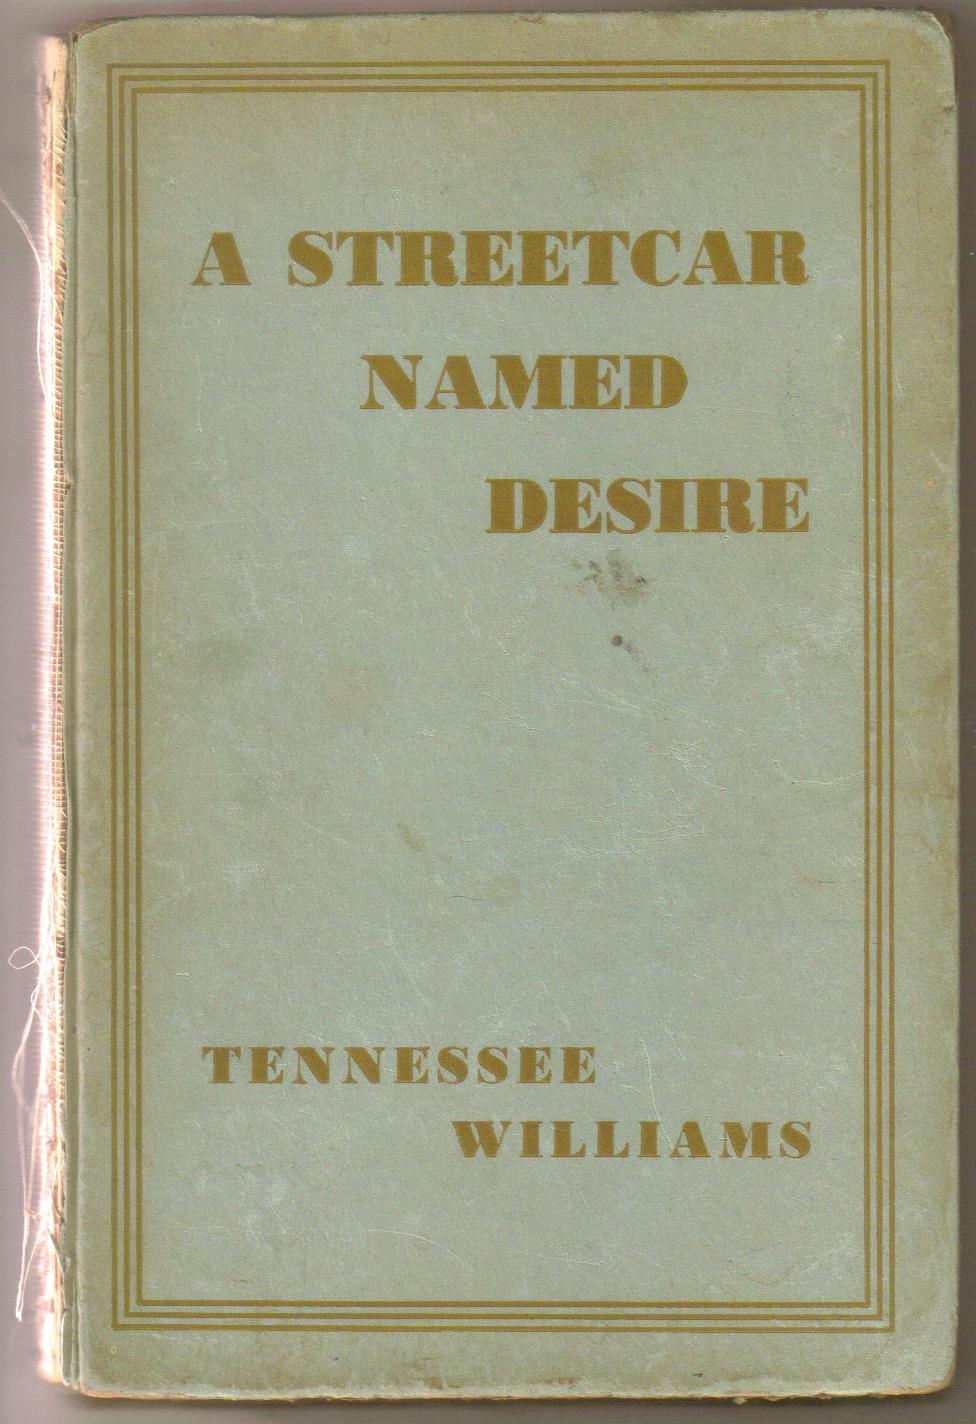 literary analysis of the play a streetcar named desire by tennessee williams Tennessee william's novel, a streetcar named desire, is the story of the brutish stanley kowalski and his meek wife stella, a new orleans couple whose lives are turned upside down with the arrival of stella's neurotic, southern belle sister blanche who is immediately drawn into a battle of wills with.